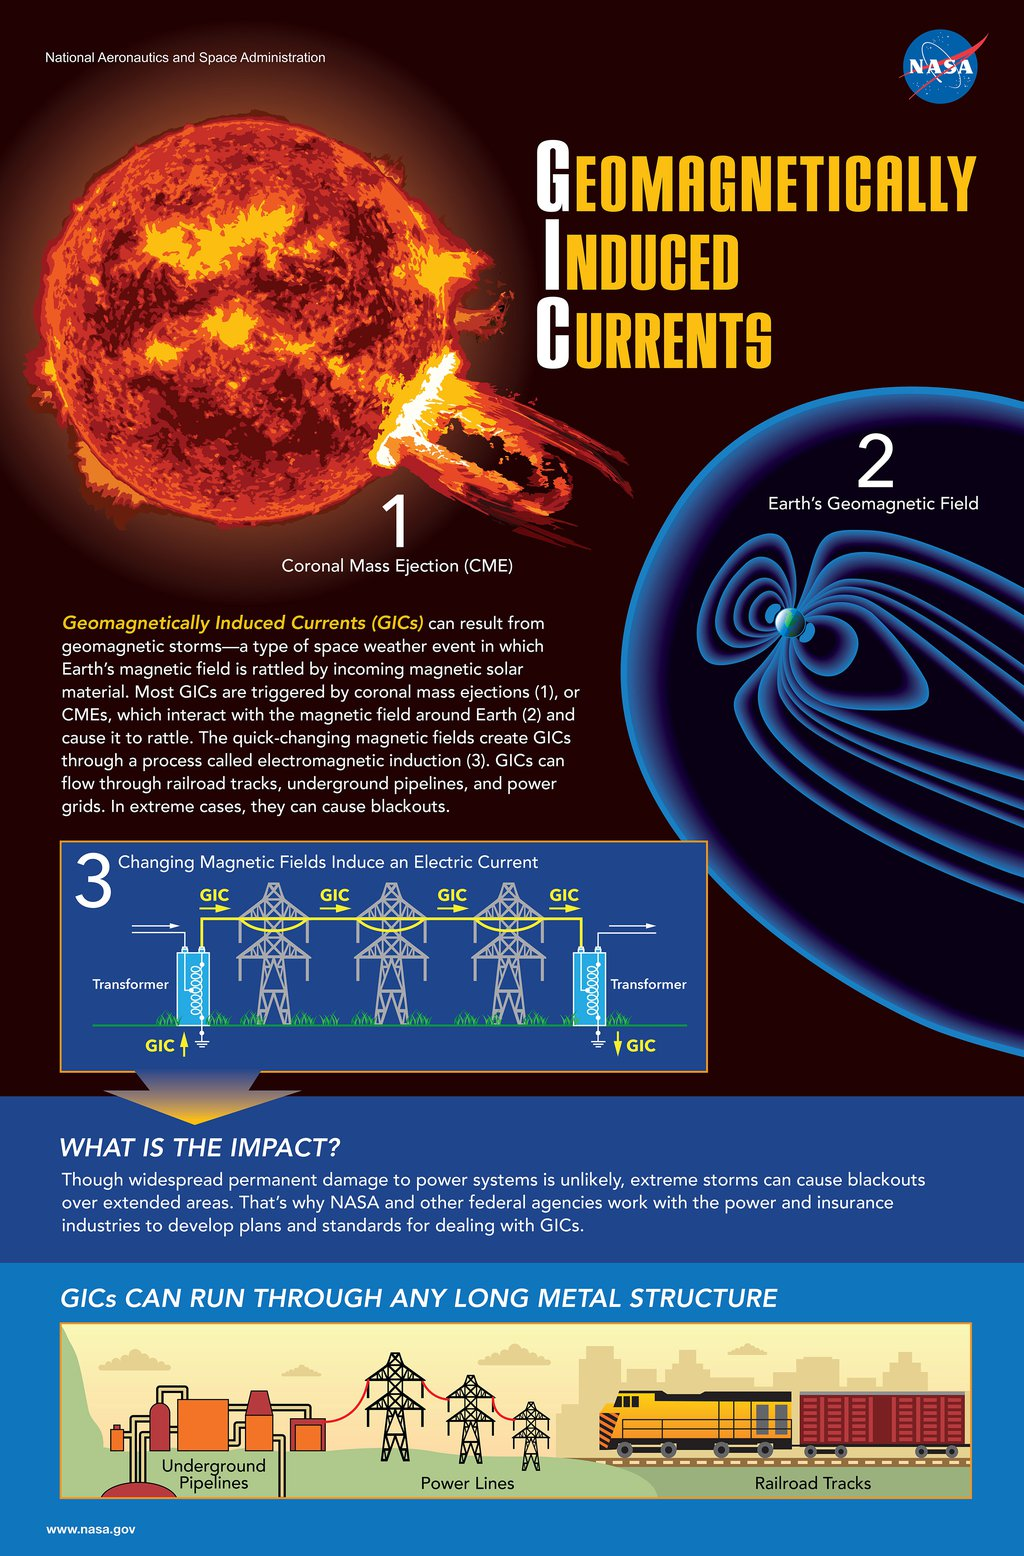 Geomagnetically Induced Currents (GICs)